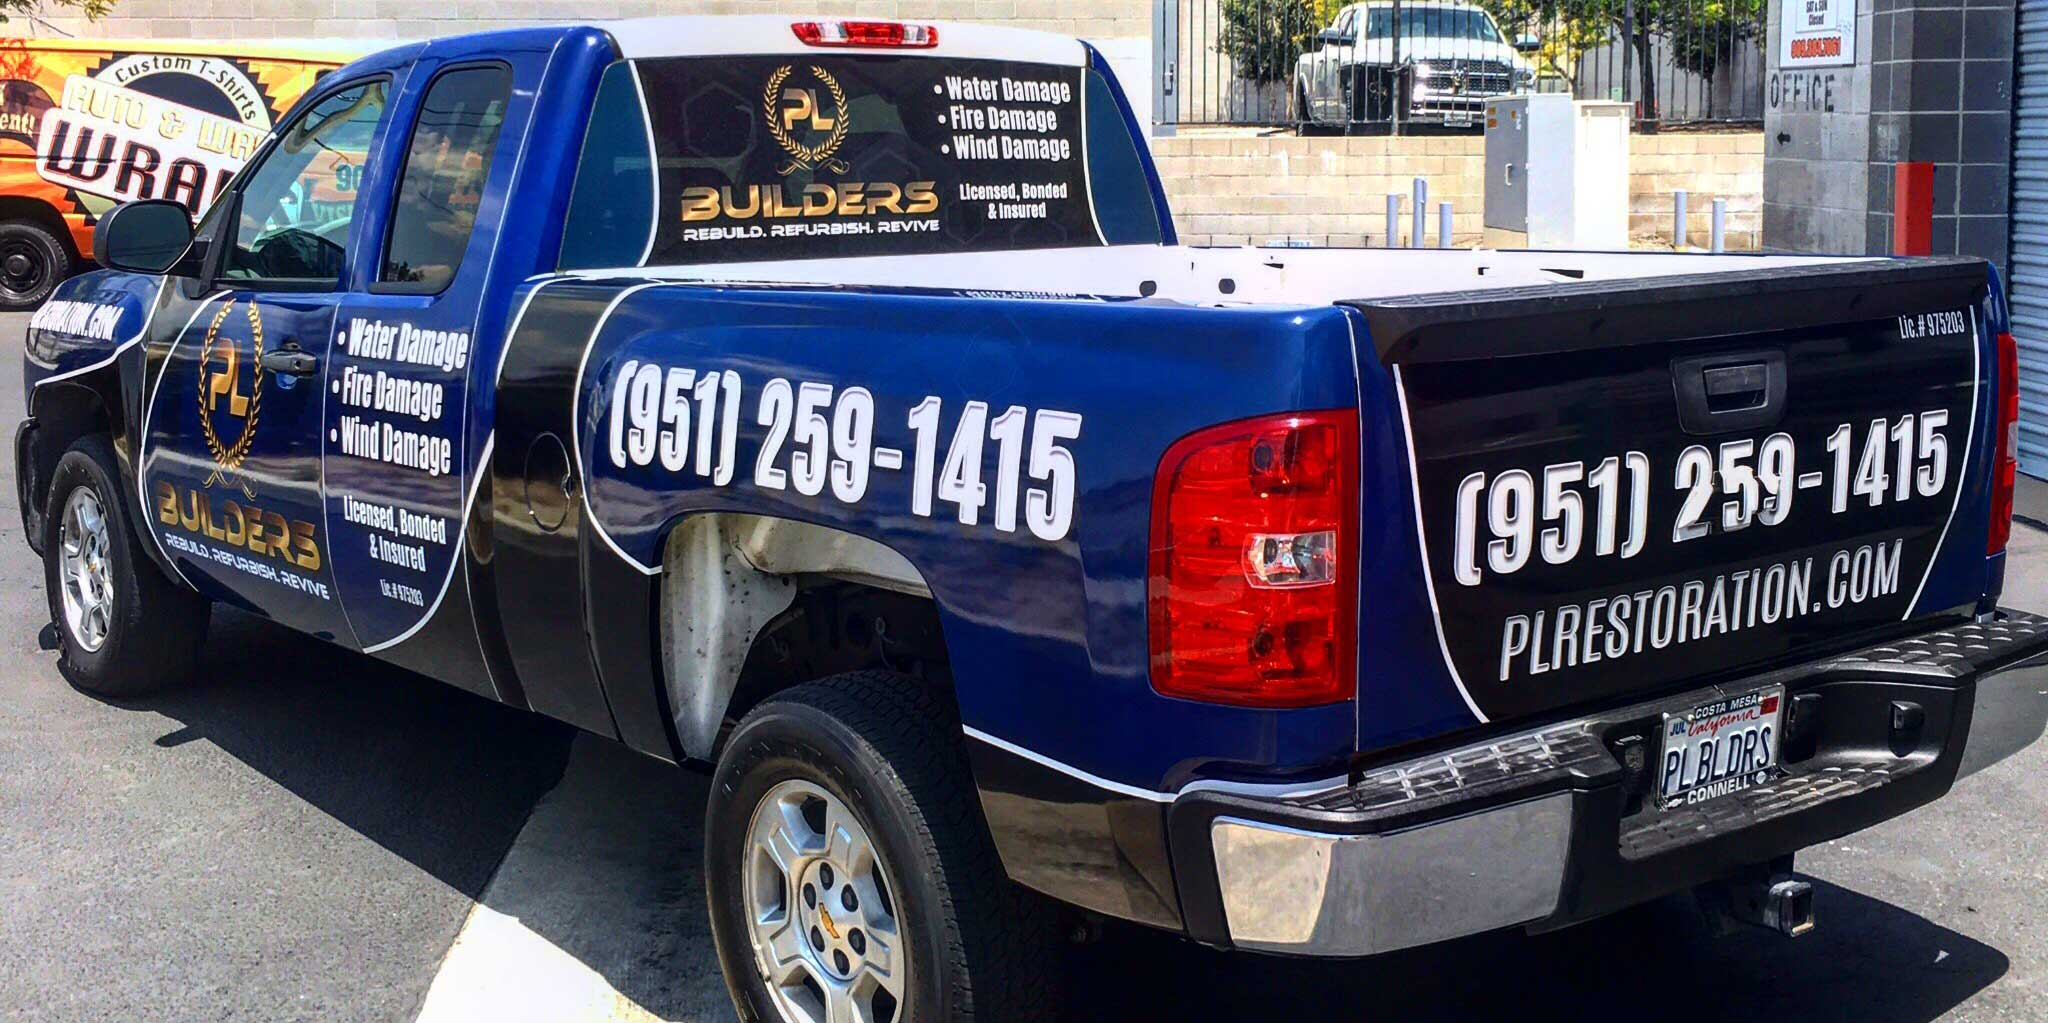 San Jacinto CA emergency damage restoration services fire and water damage restoration company water damage restoration services fire damage restoration services